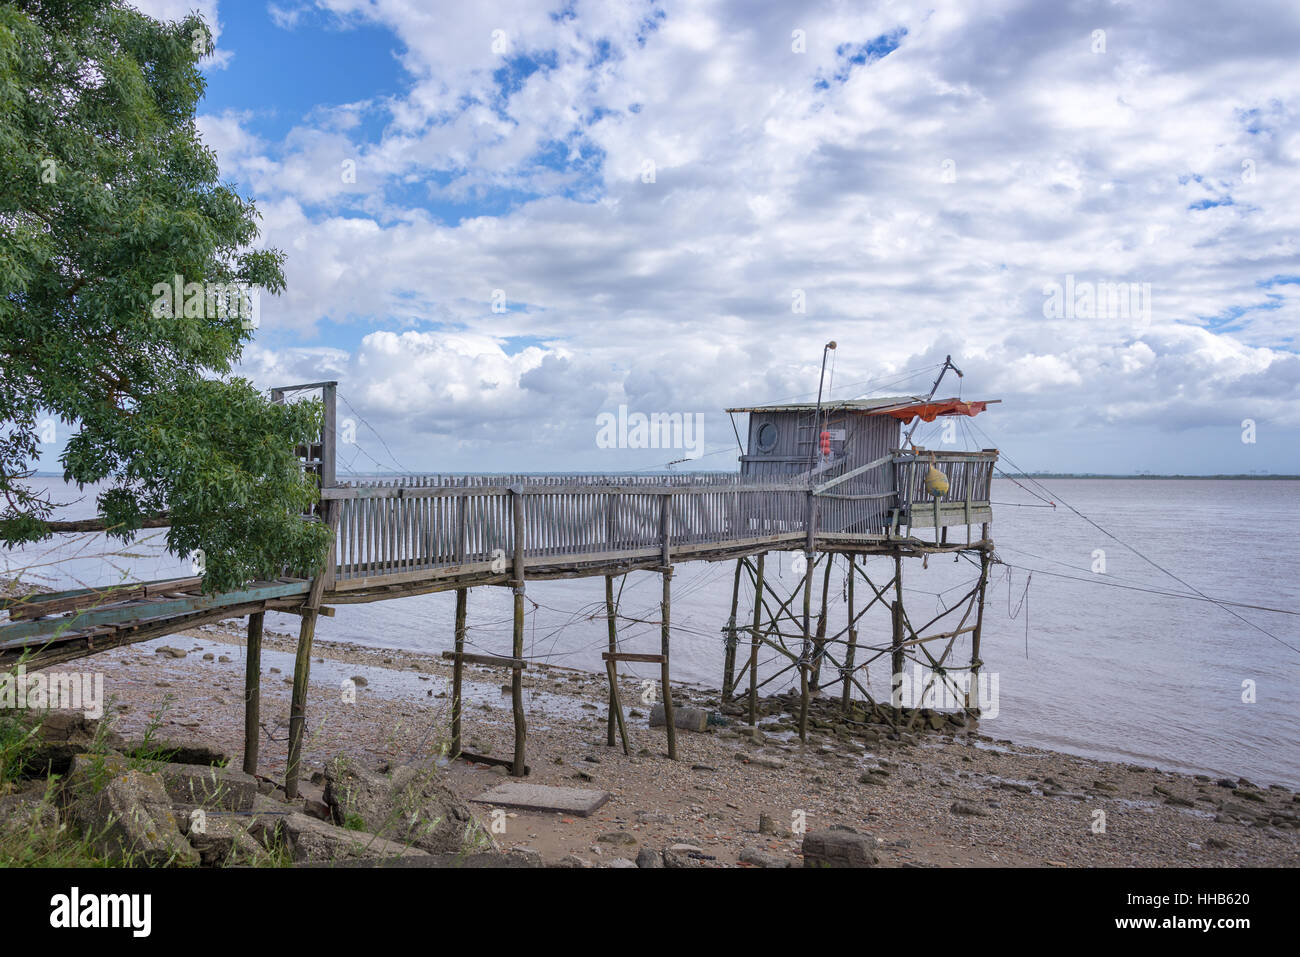 Old wooden fisher cabin on Gironde estuary, France - Stock Image